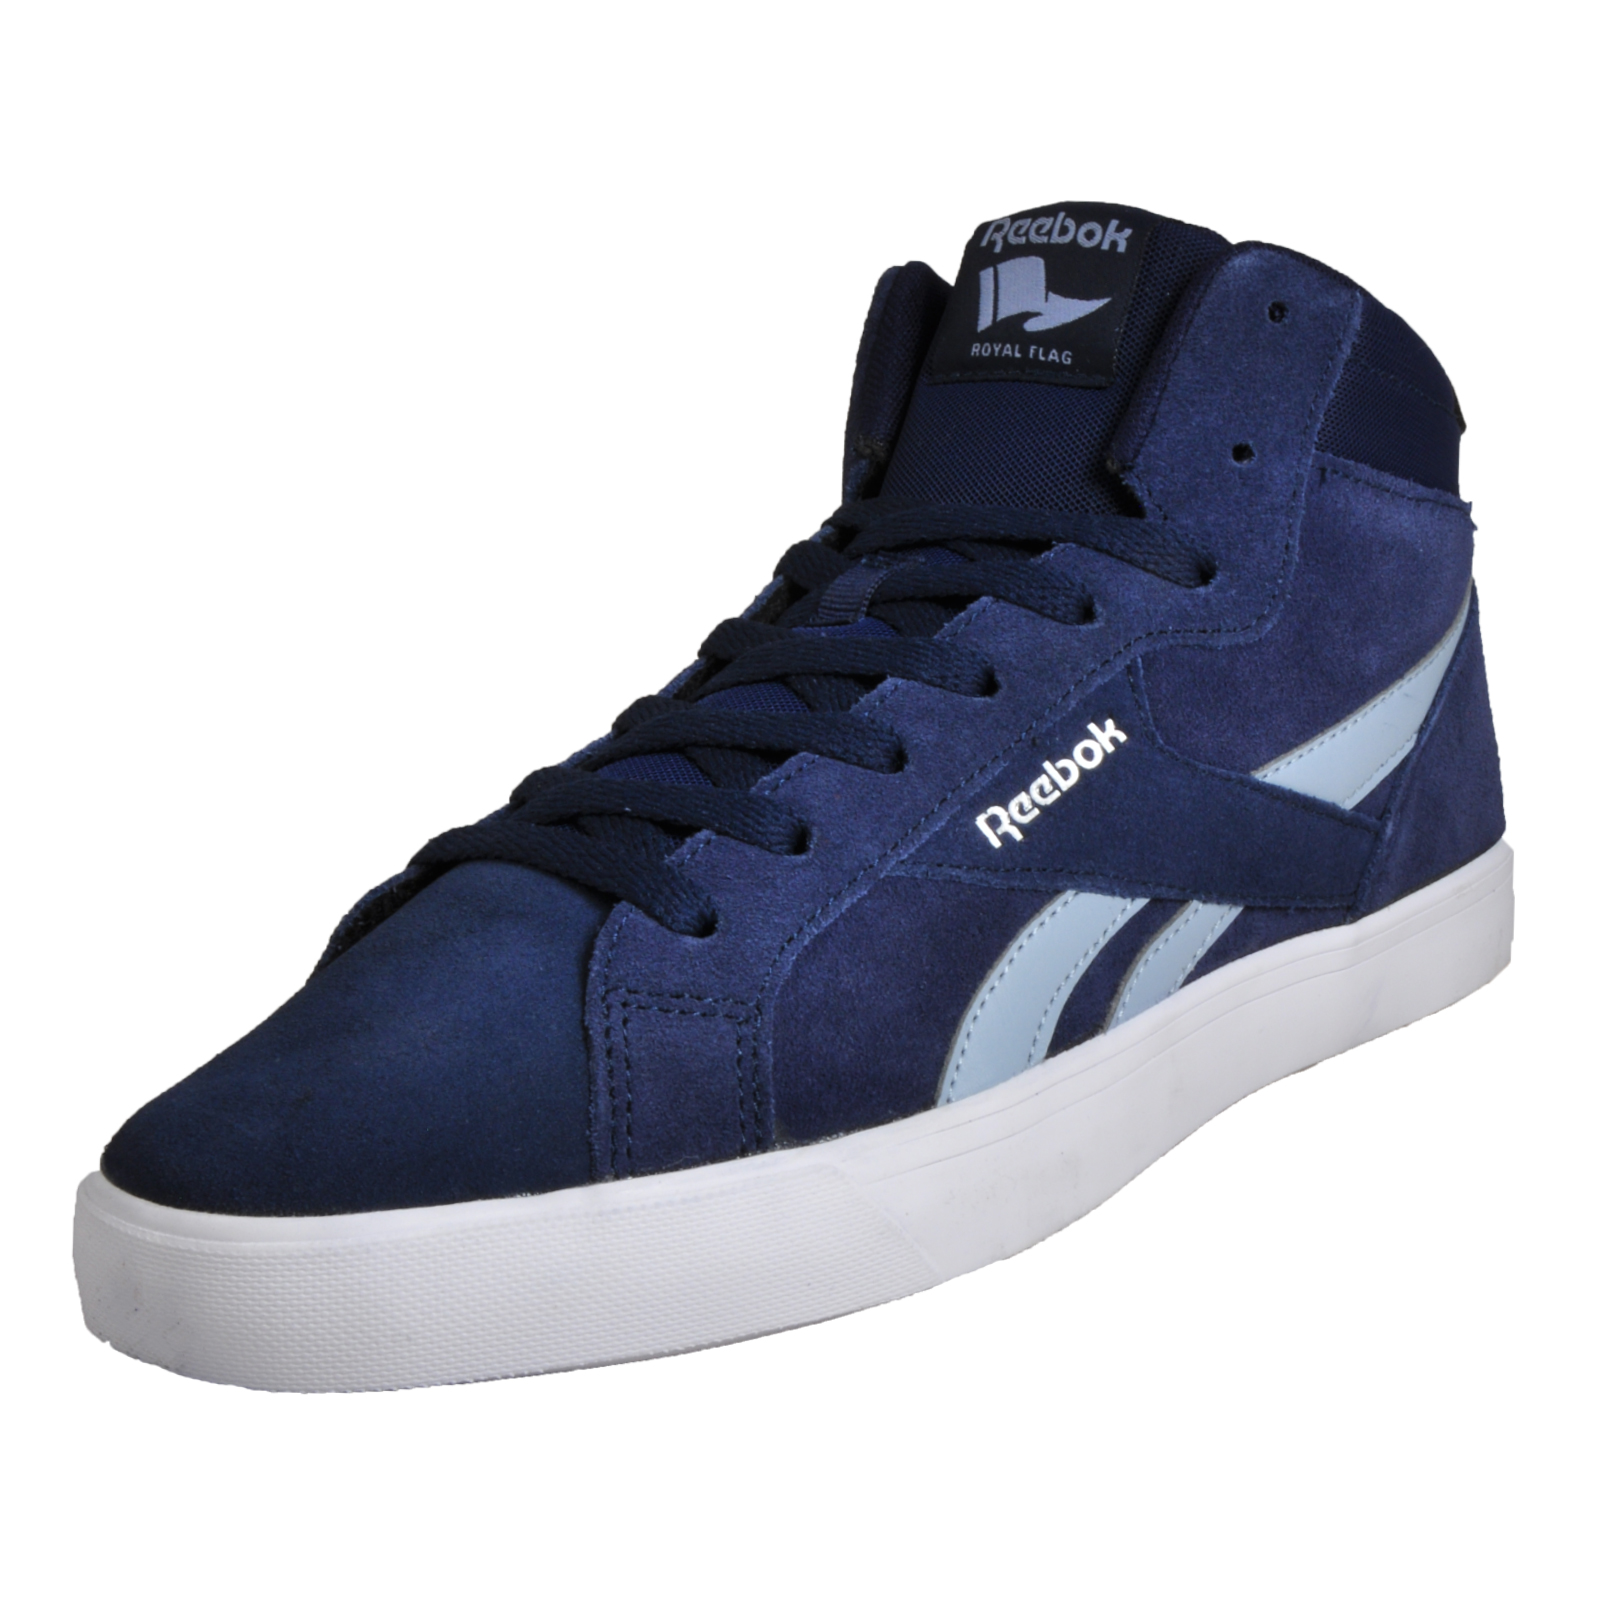 c5dee4ccb6d1 Details about Reebok Royal Complete 2MS Classic Men s Causal Fashion Retro  Mid Trainers Navy